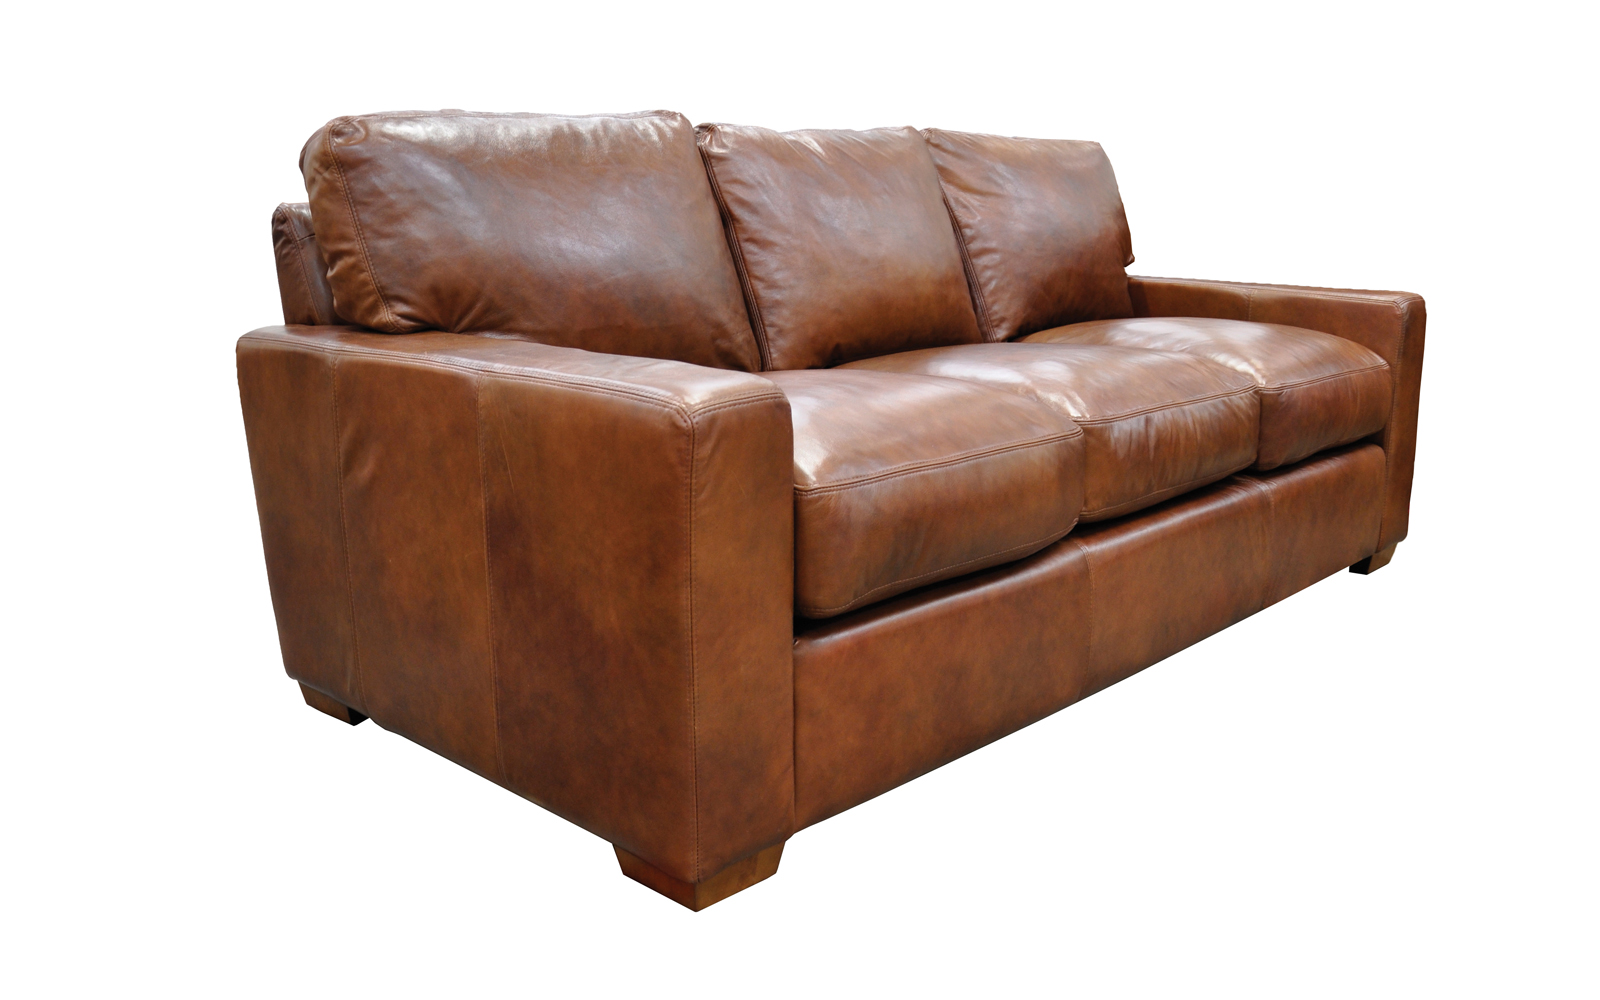 Arizona leather sofas sofa review for Arizona leather sectional sofa with chaise